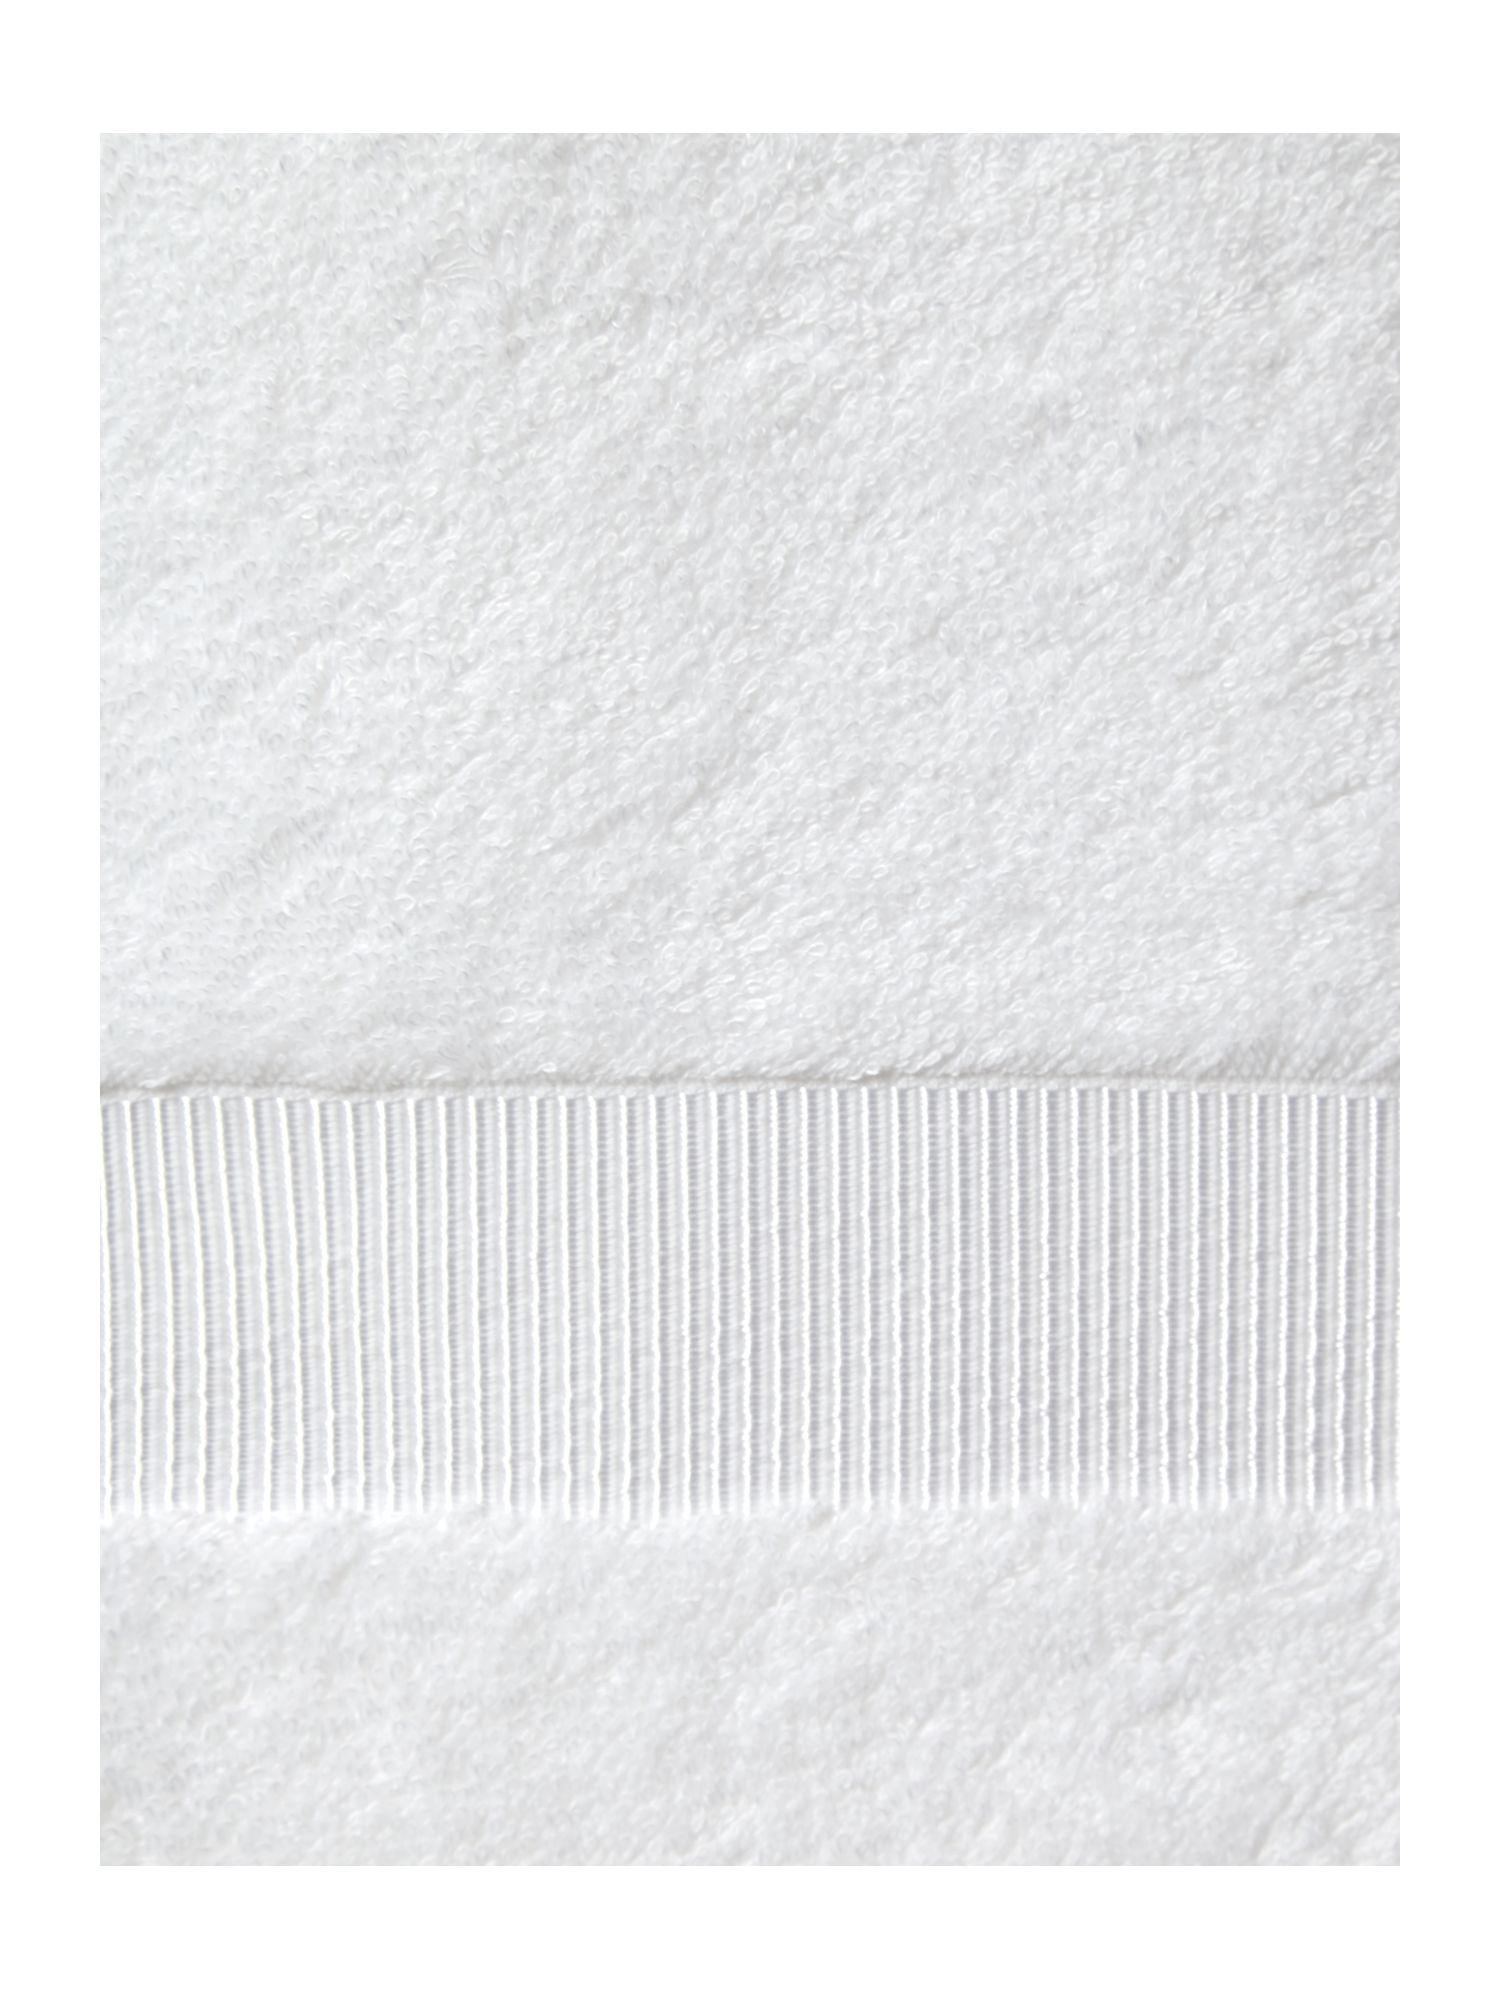 Cotton Modal 650gsm towels in white